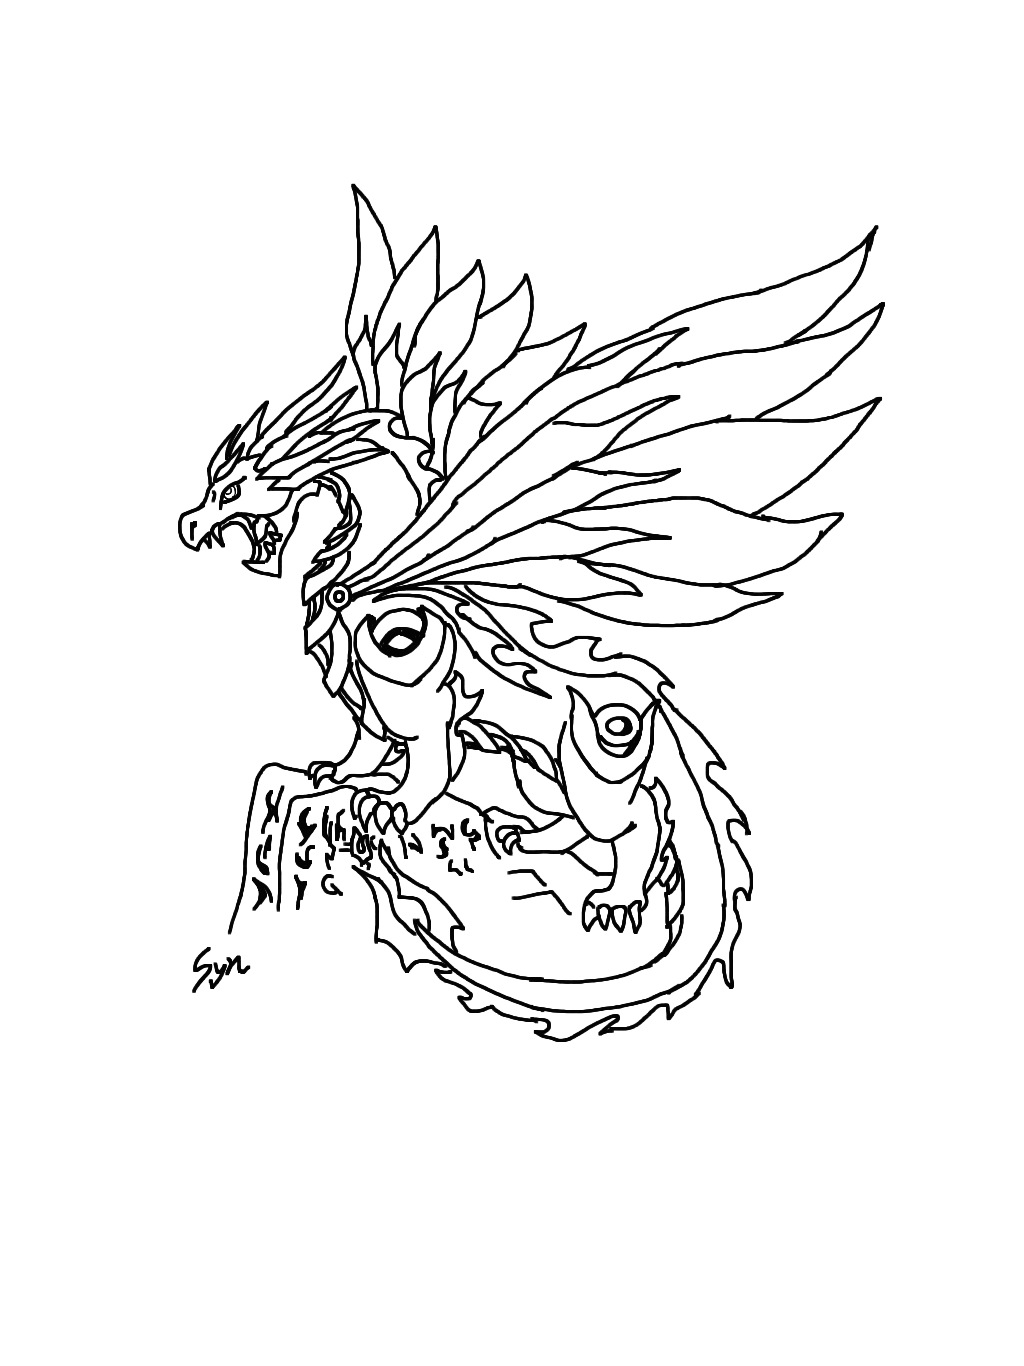 sdaabwjpg - Dragonvale Dragons Coloring Pages